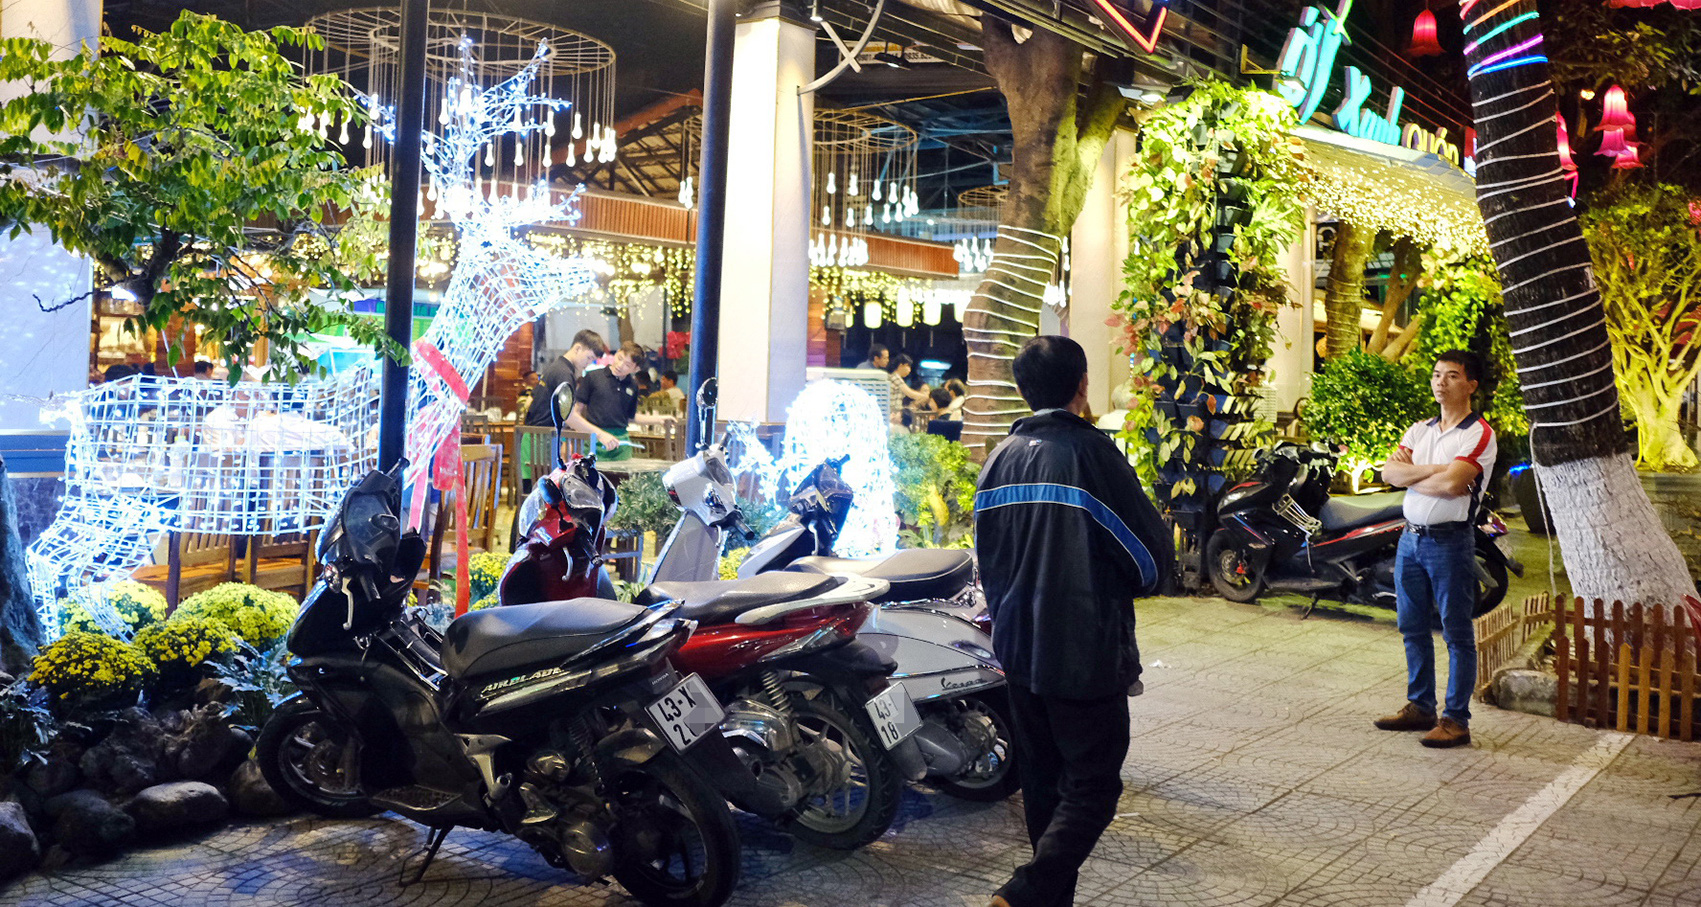 Few motorbikes are parked in front of a restaurant in Hai Chau District, Da Nang City. Photo: T.Luc / Tuoi Tre